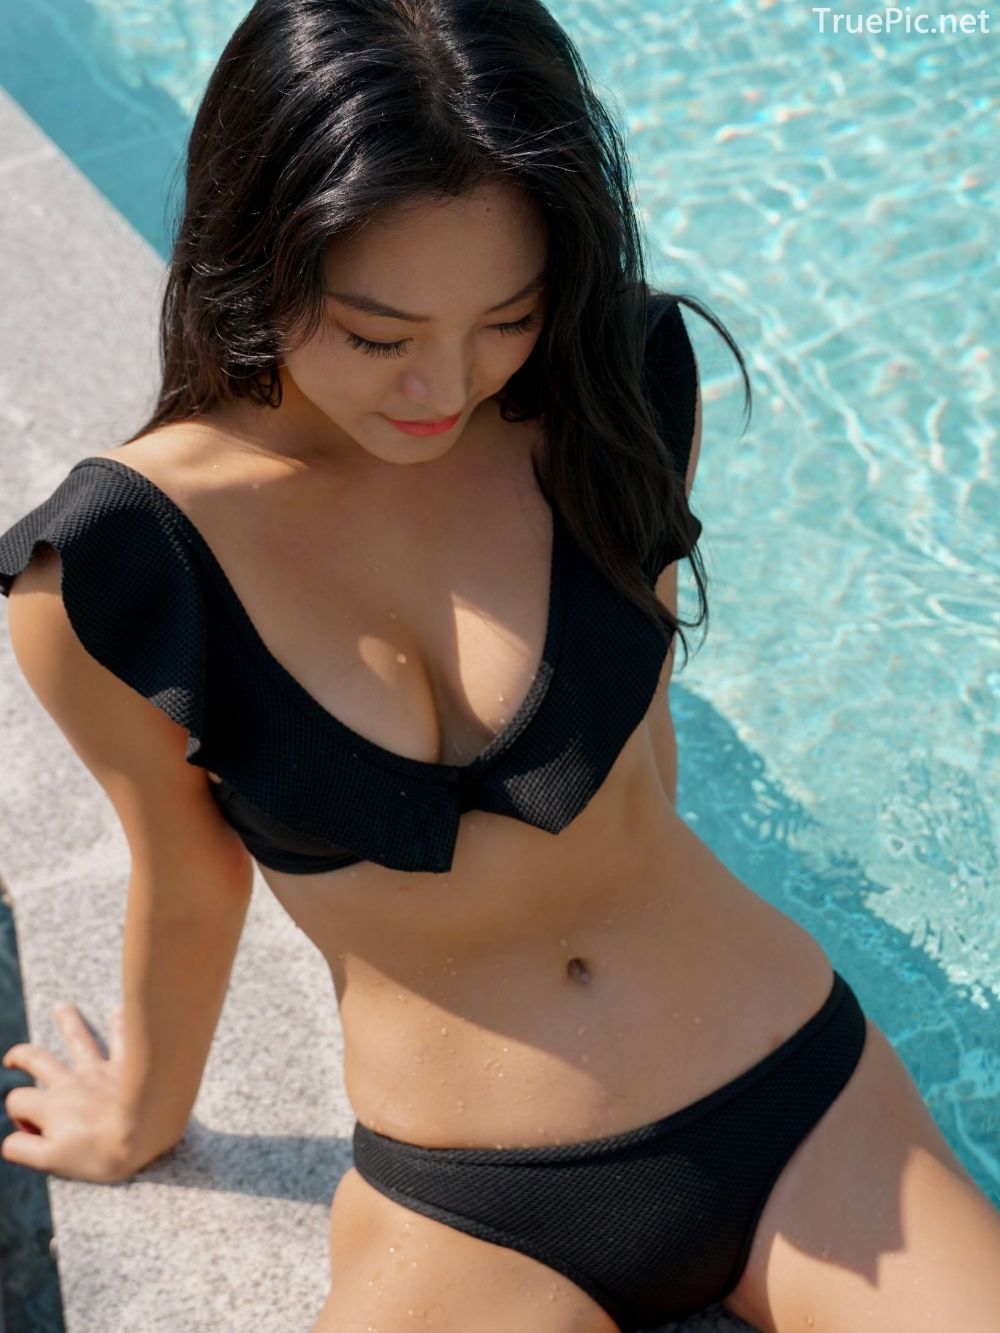 Korean model and fashion - Choi Seok Yeong - Alice Black and Blue Bikini - Picture 2